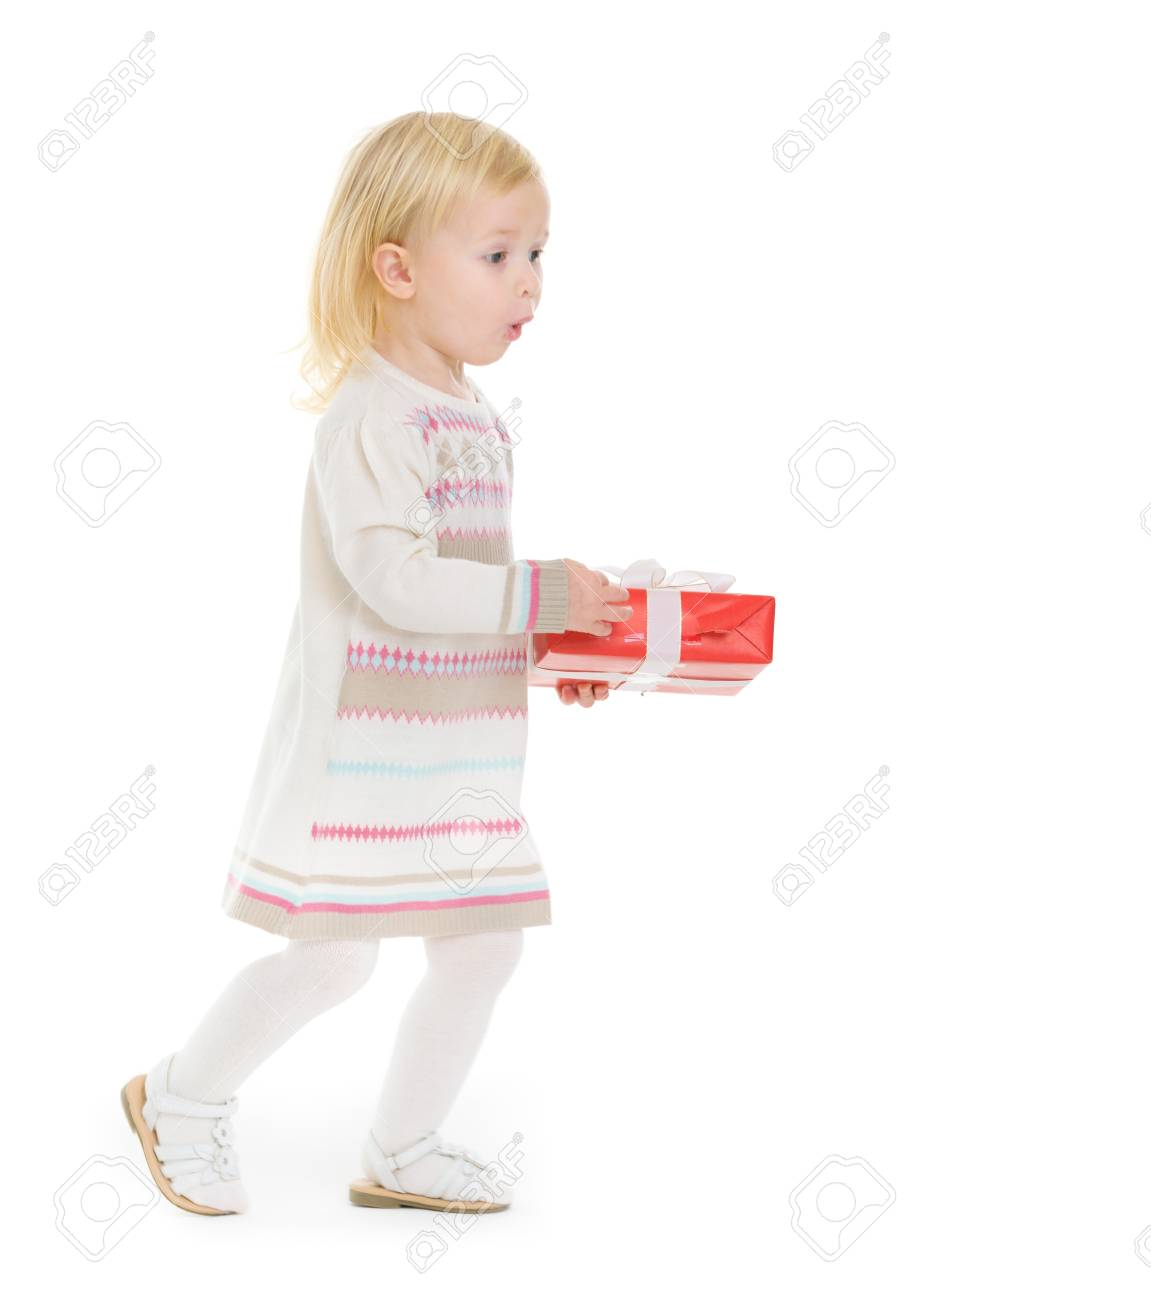 Surprised baby girl with Christmas present box Stock Photo - 16577928